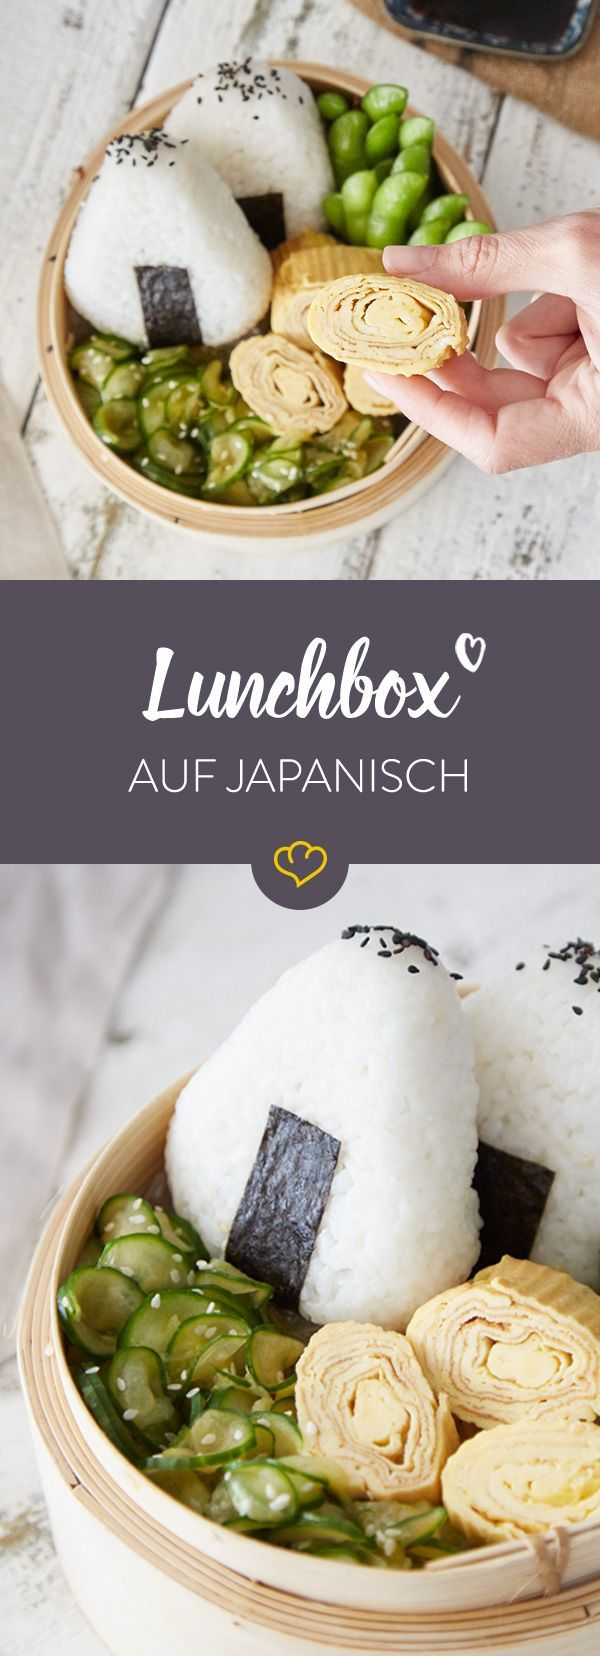 Photo of Lunch box in Japanese